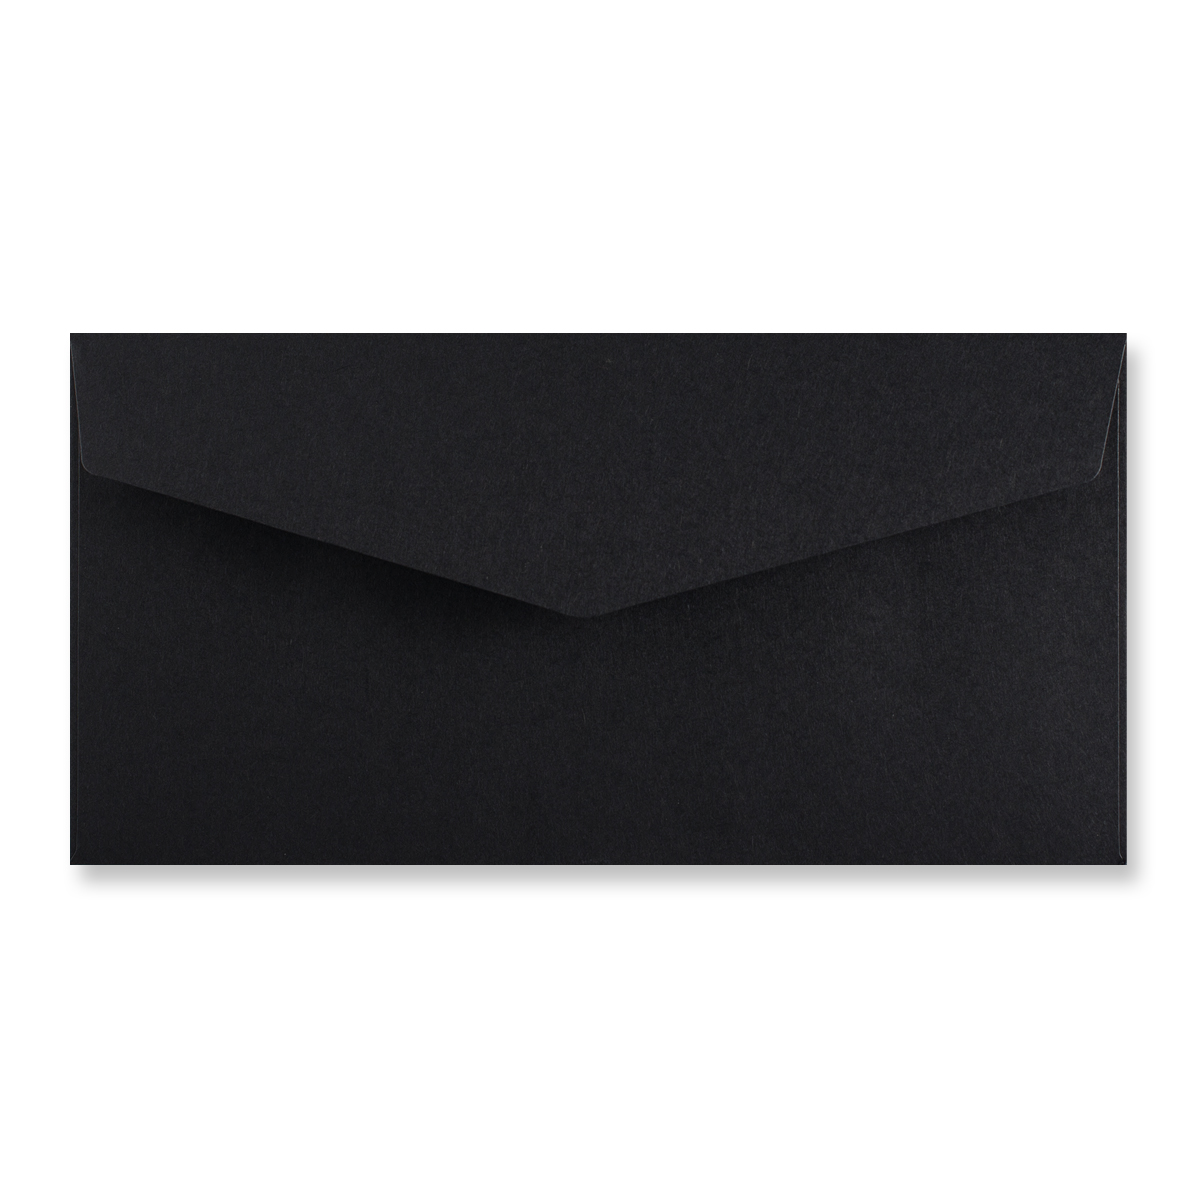 DL BLACK V-FLAP PEEL AND SEAL ENVELOPES